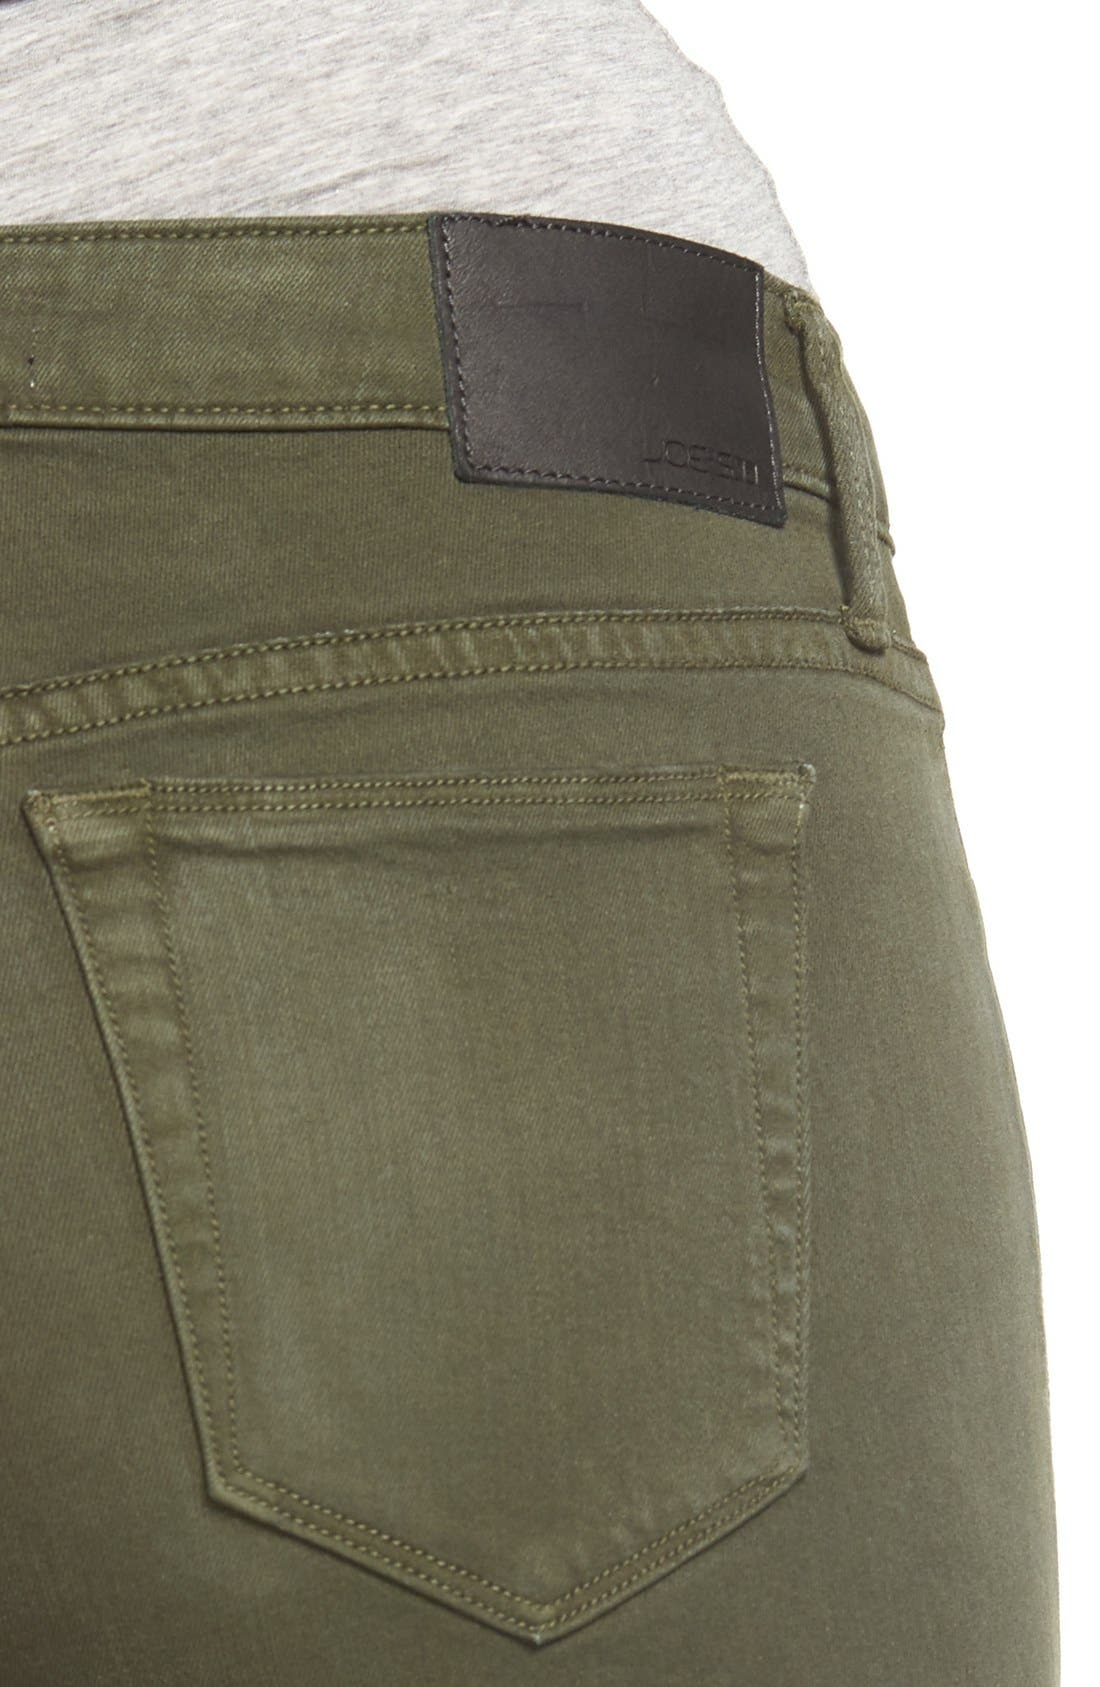 Icon Ankle Skinny Jeans,                             Alternate thumbnail 6, color,                             Military Green